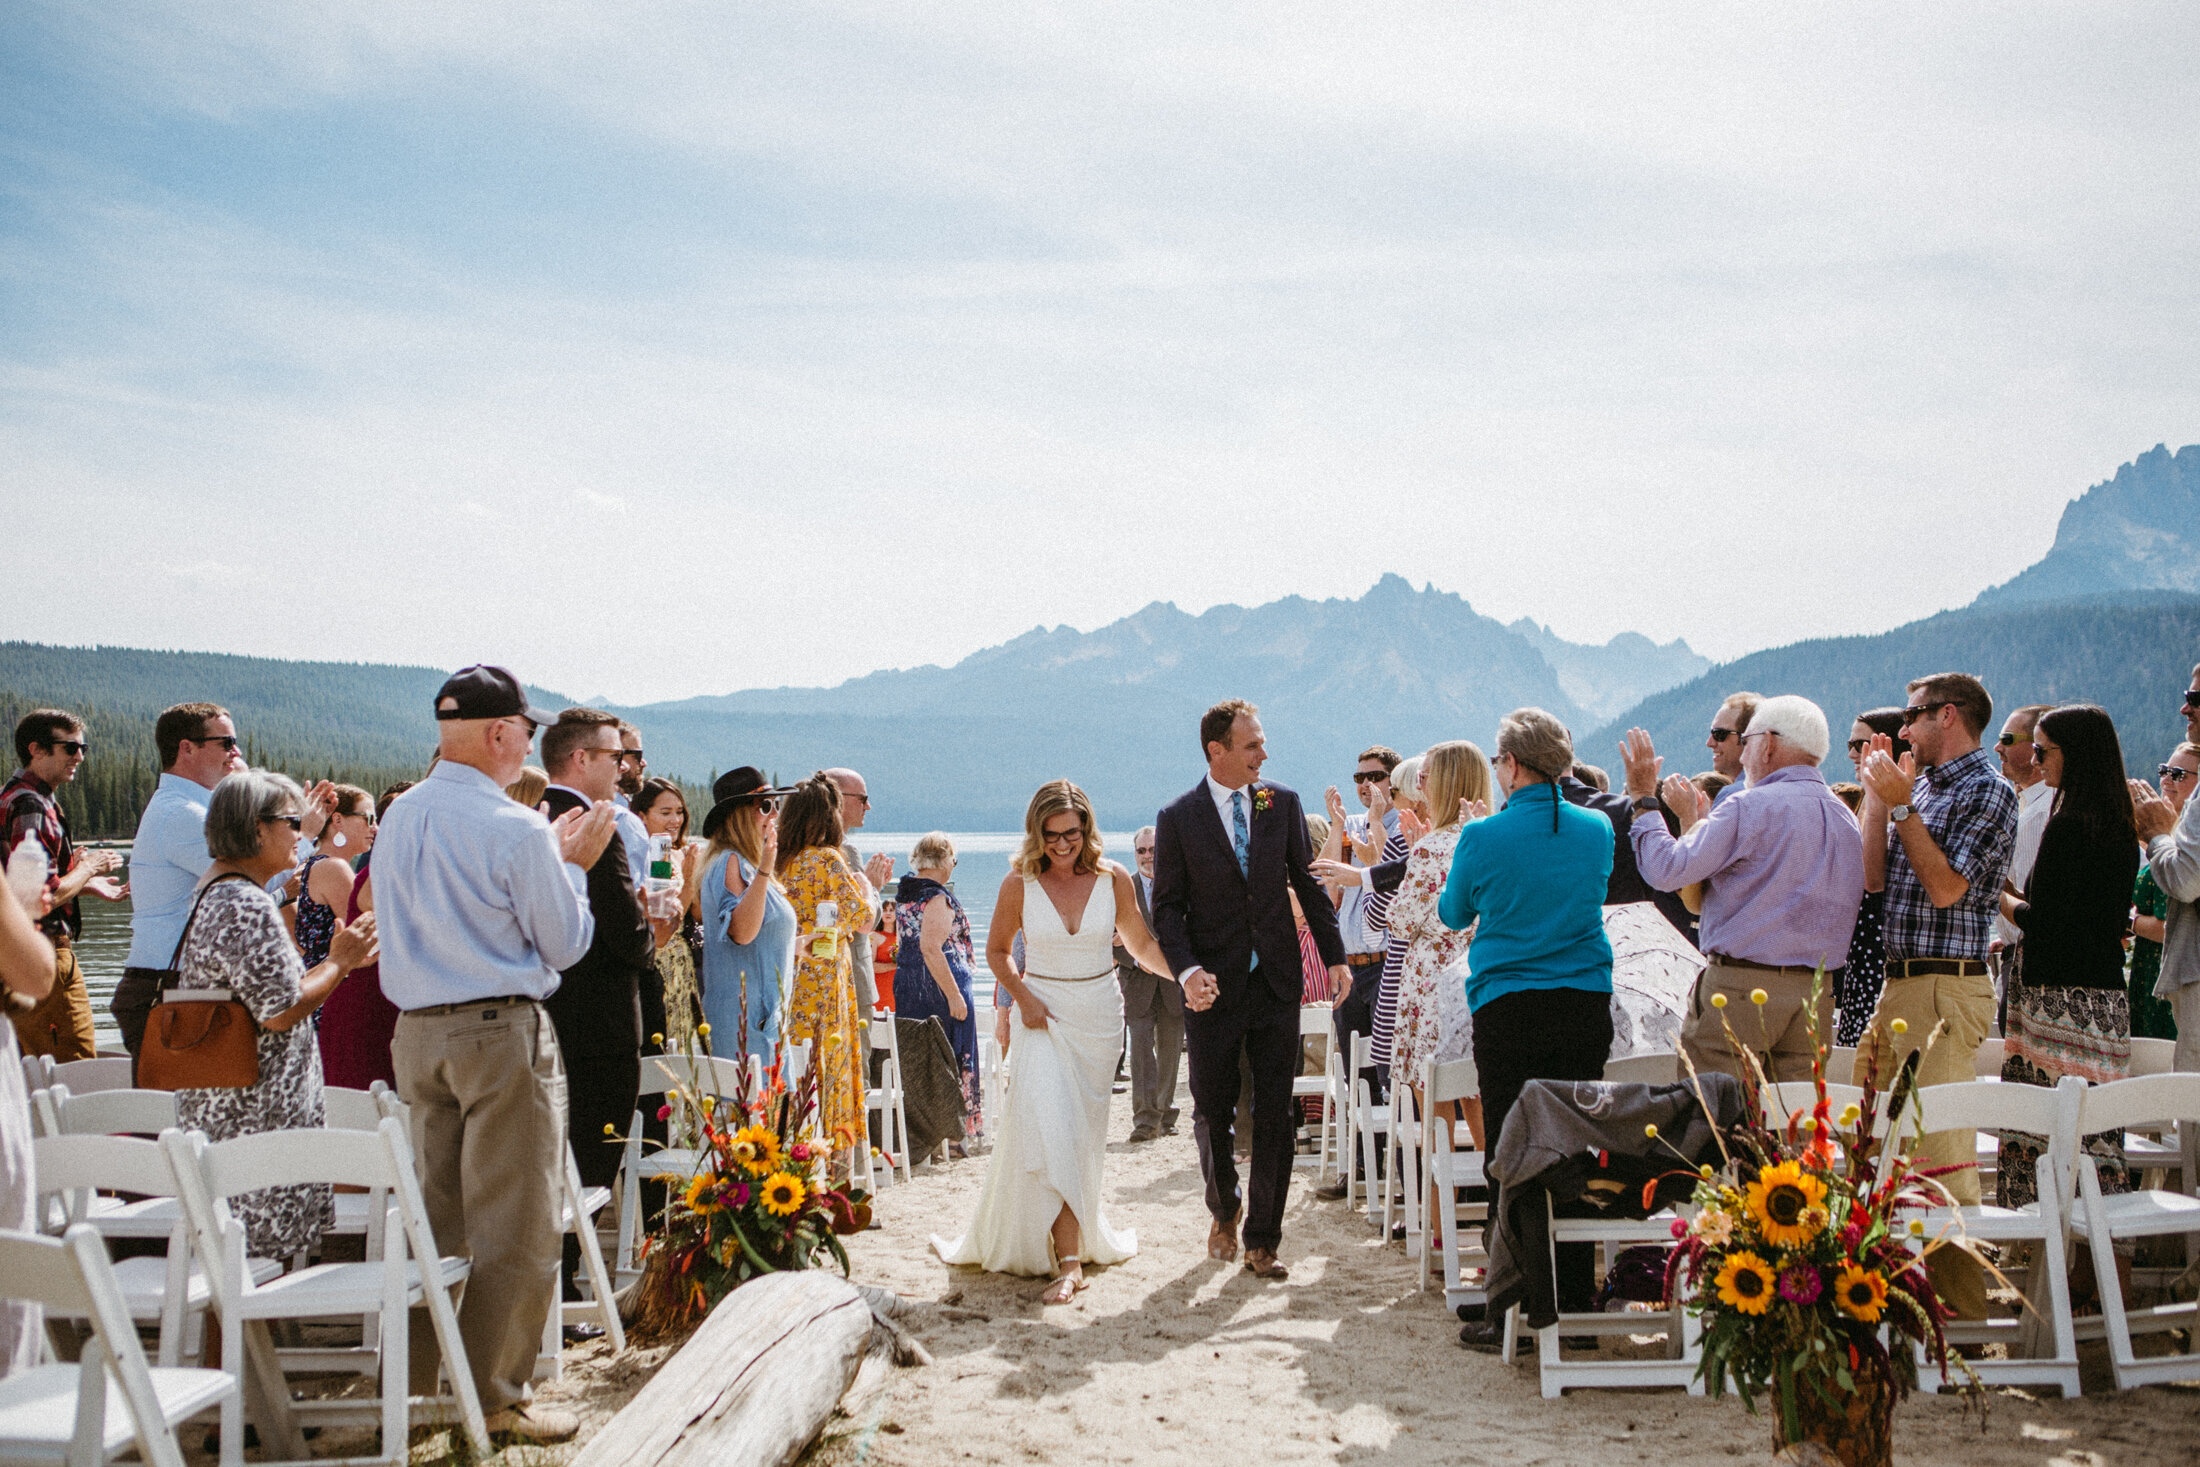 redfish-lake-wedding-stanley-idaho-b_A-69.jpg